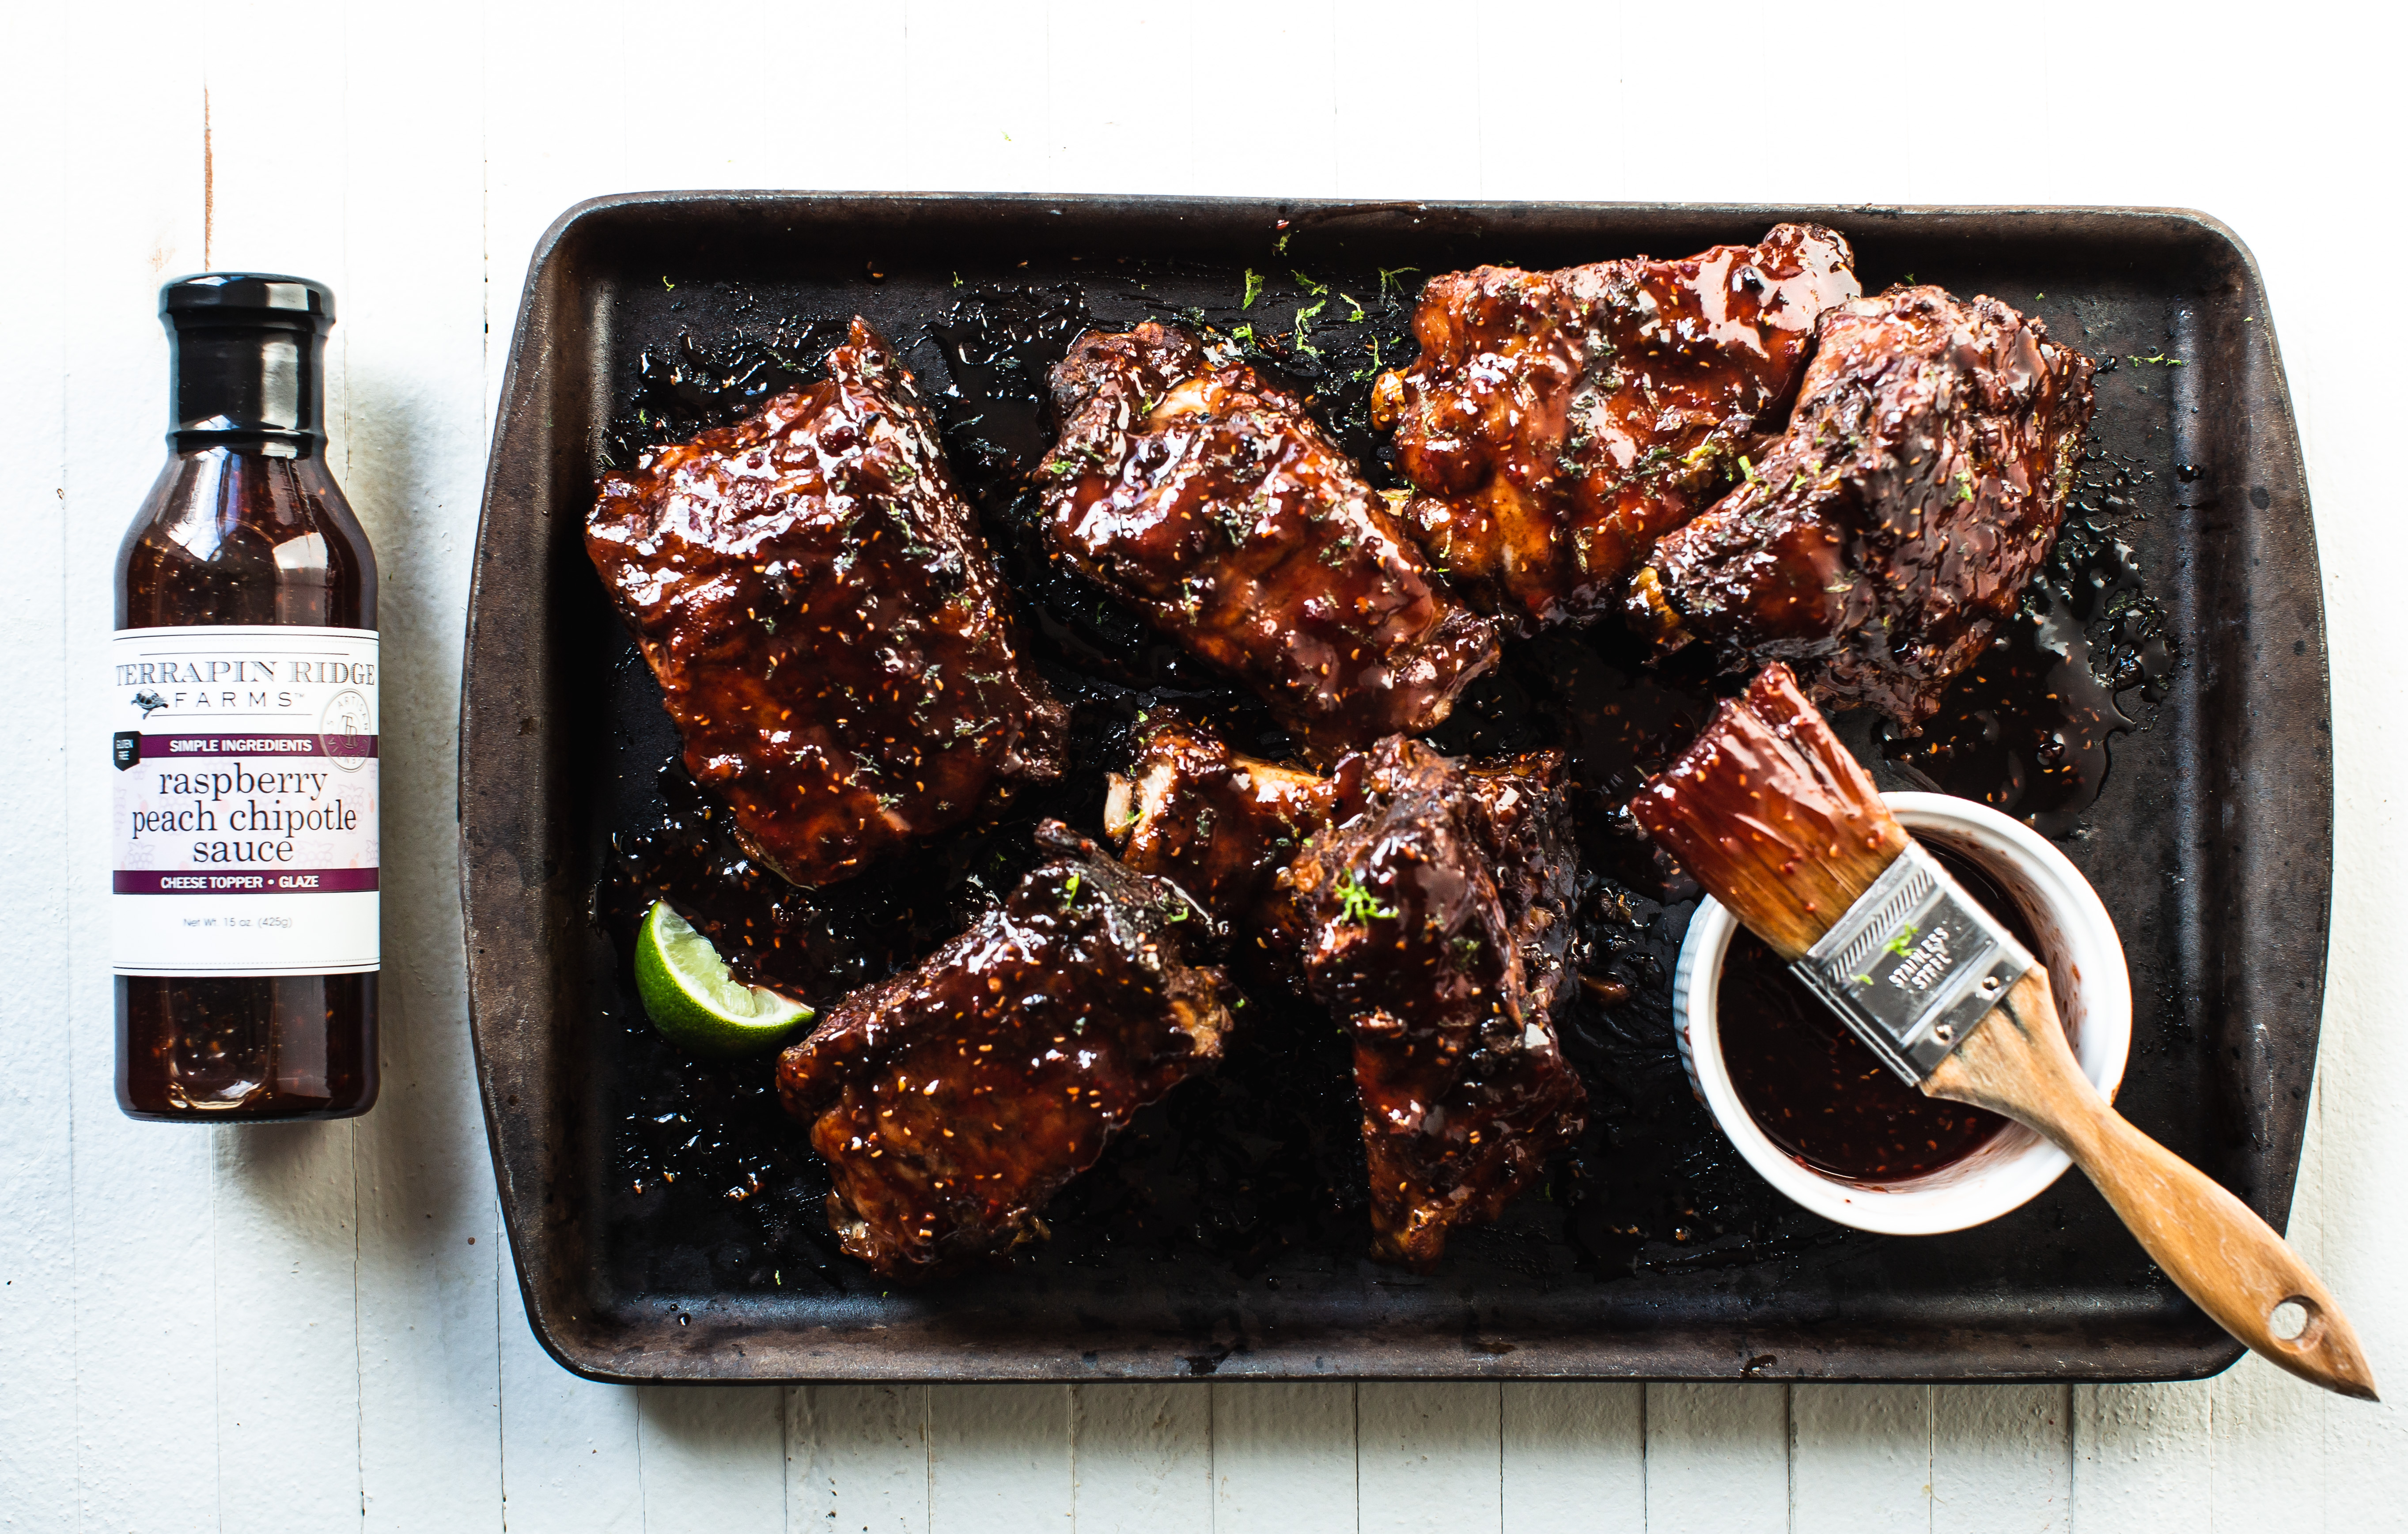 Baby Back Ribs with Raspberry Peach Chipotle Sauce